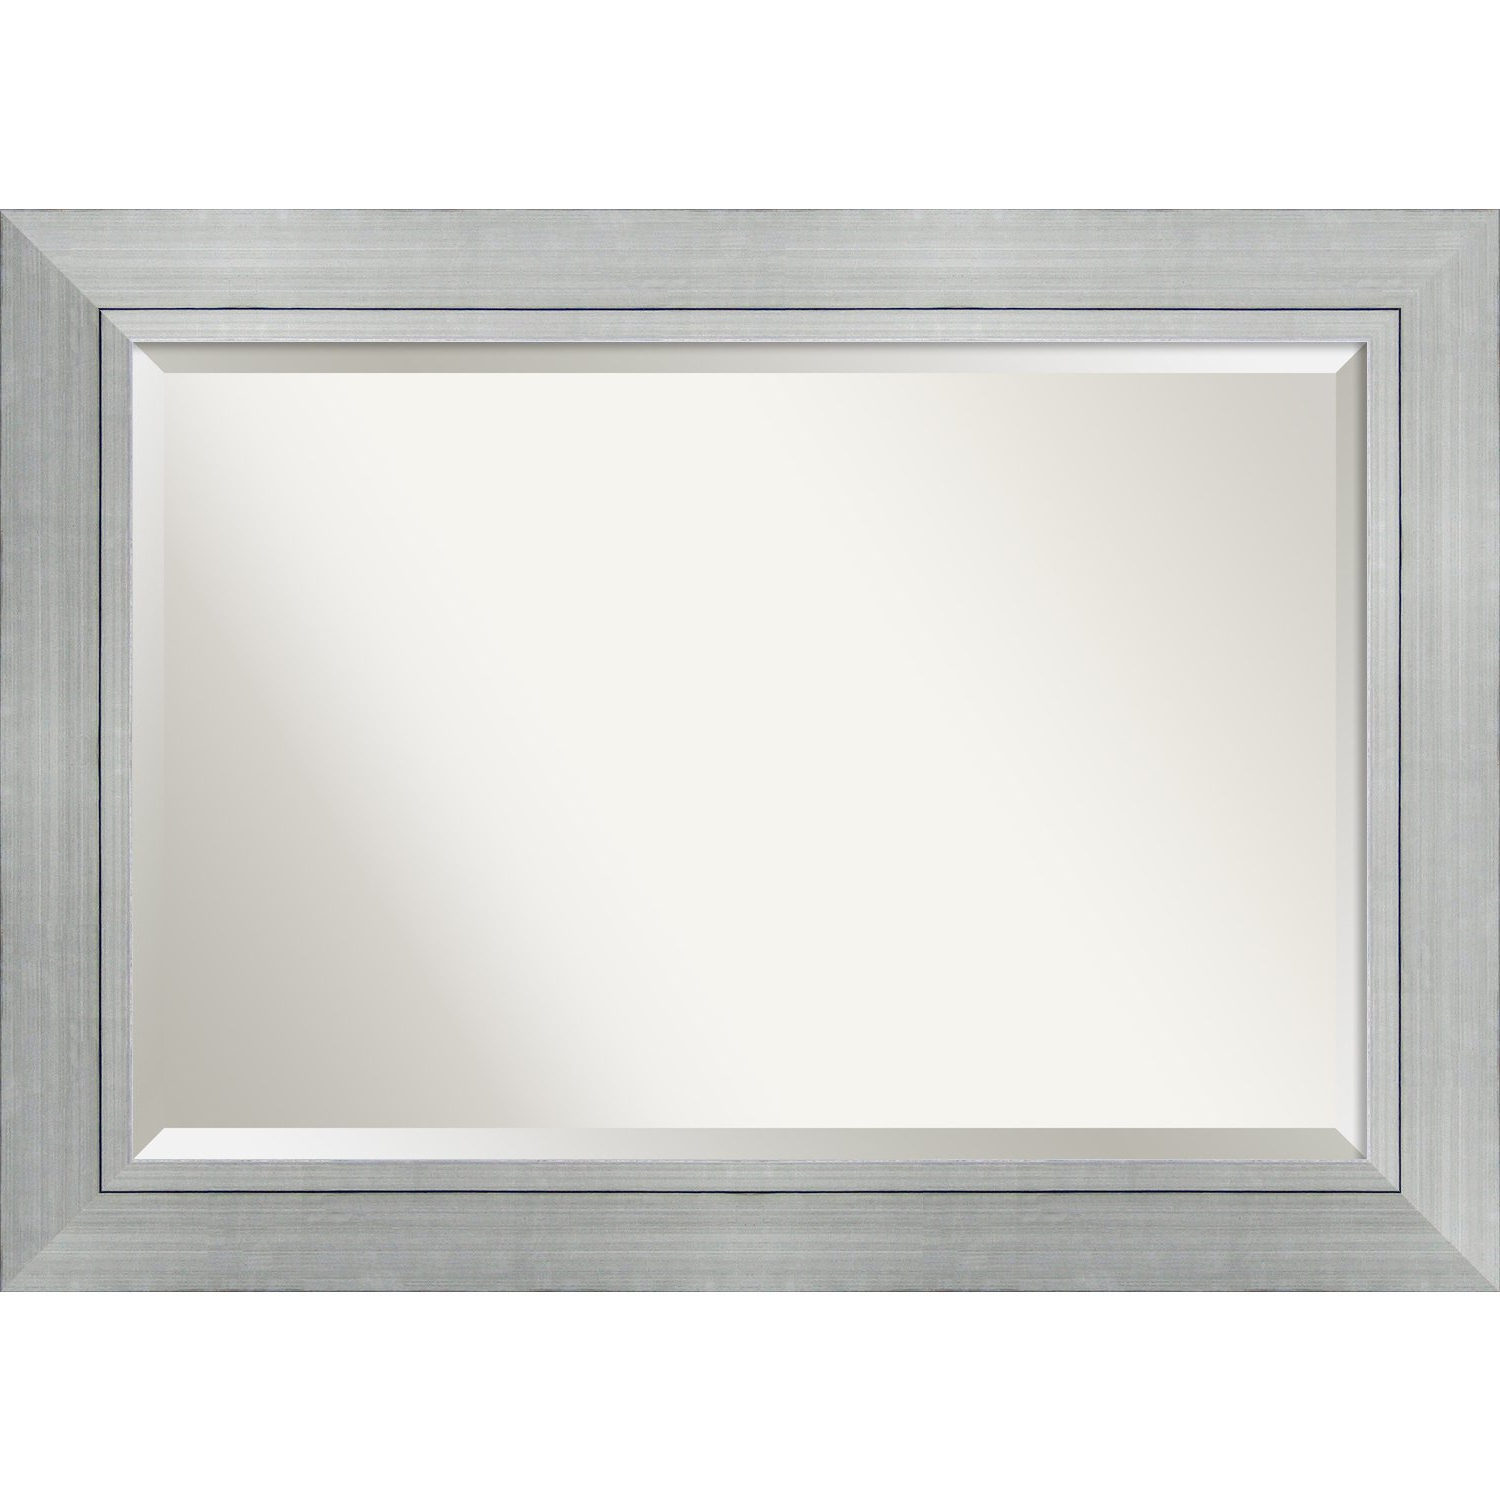 """Most Up To Date Bathroom Mirror Extra Large, Fits Standard 30"""" To 48"""" Cabinet, Romano  Silver: Outer Size 43 X 31 Throughout Extra Large Framed Wall Mirrors (Gallery 19 of 20)"""